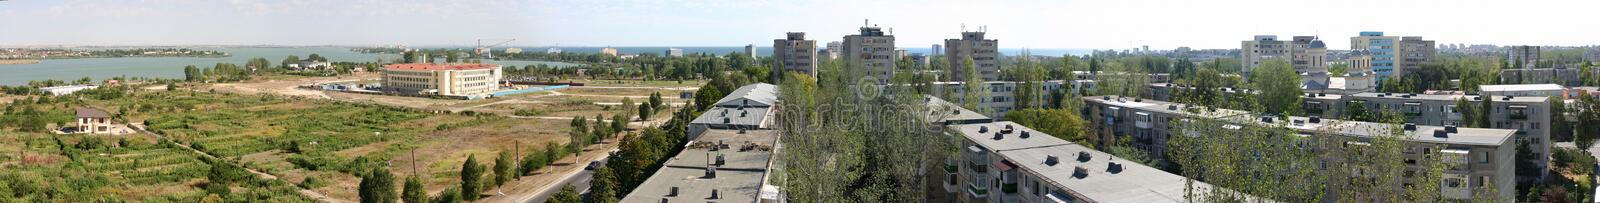 Outskirts of Constanta royalty free stock image